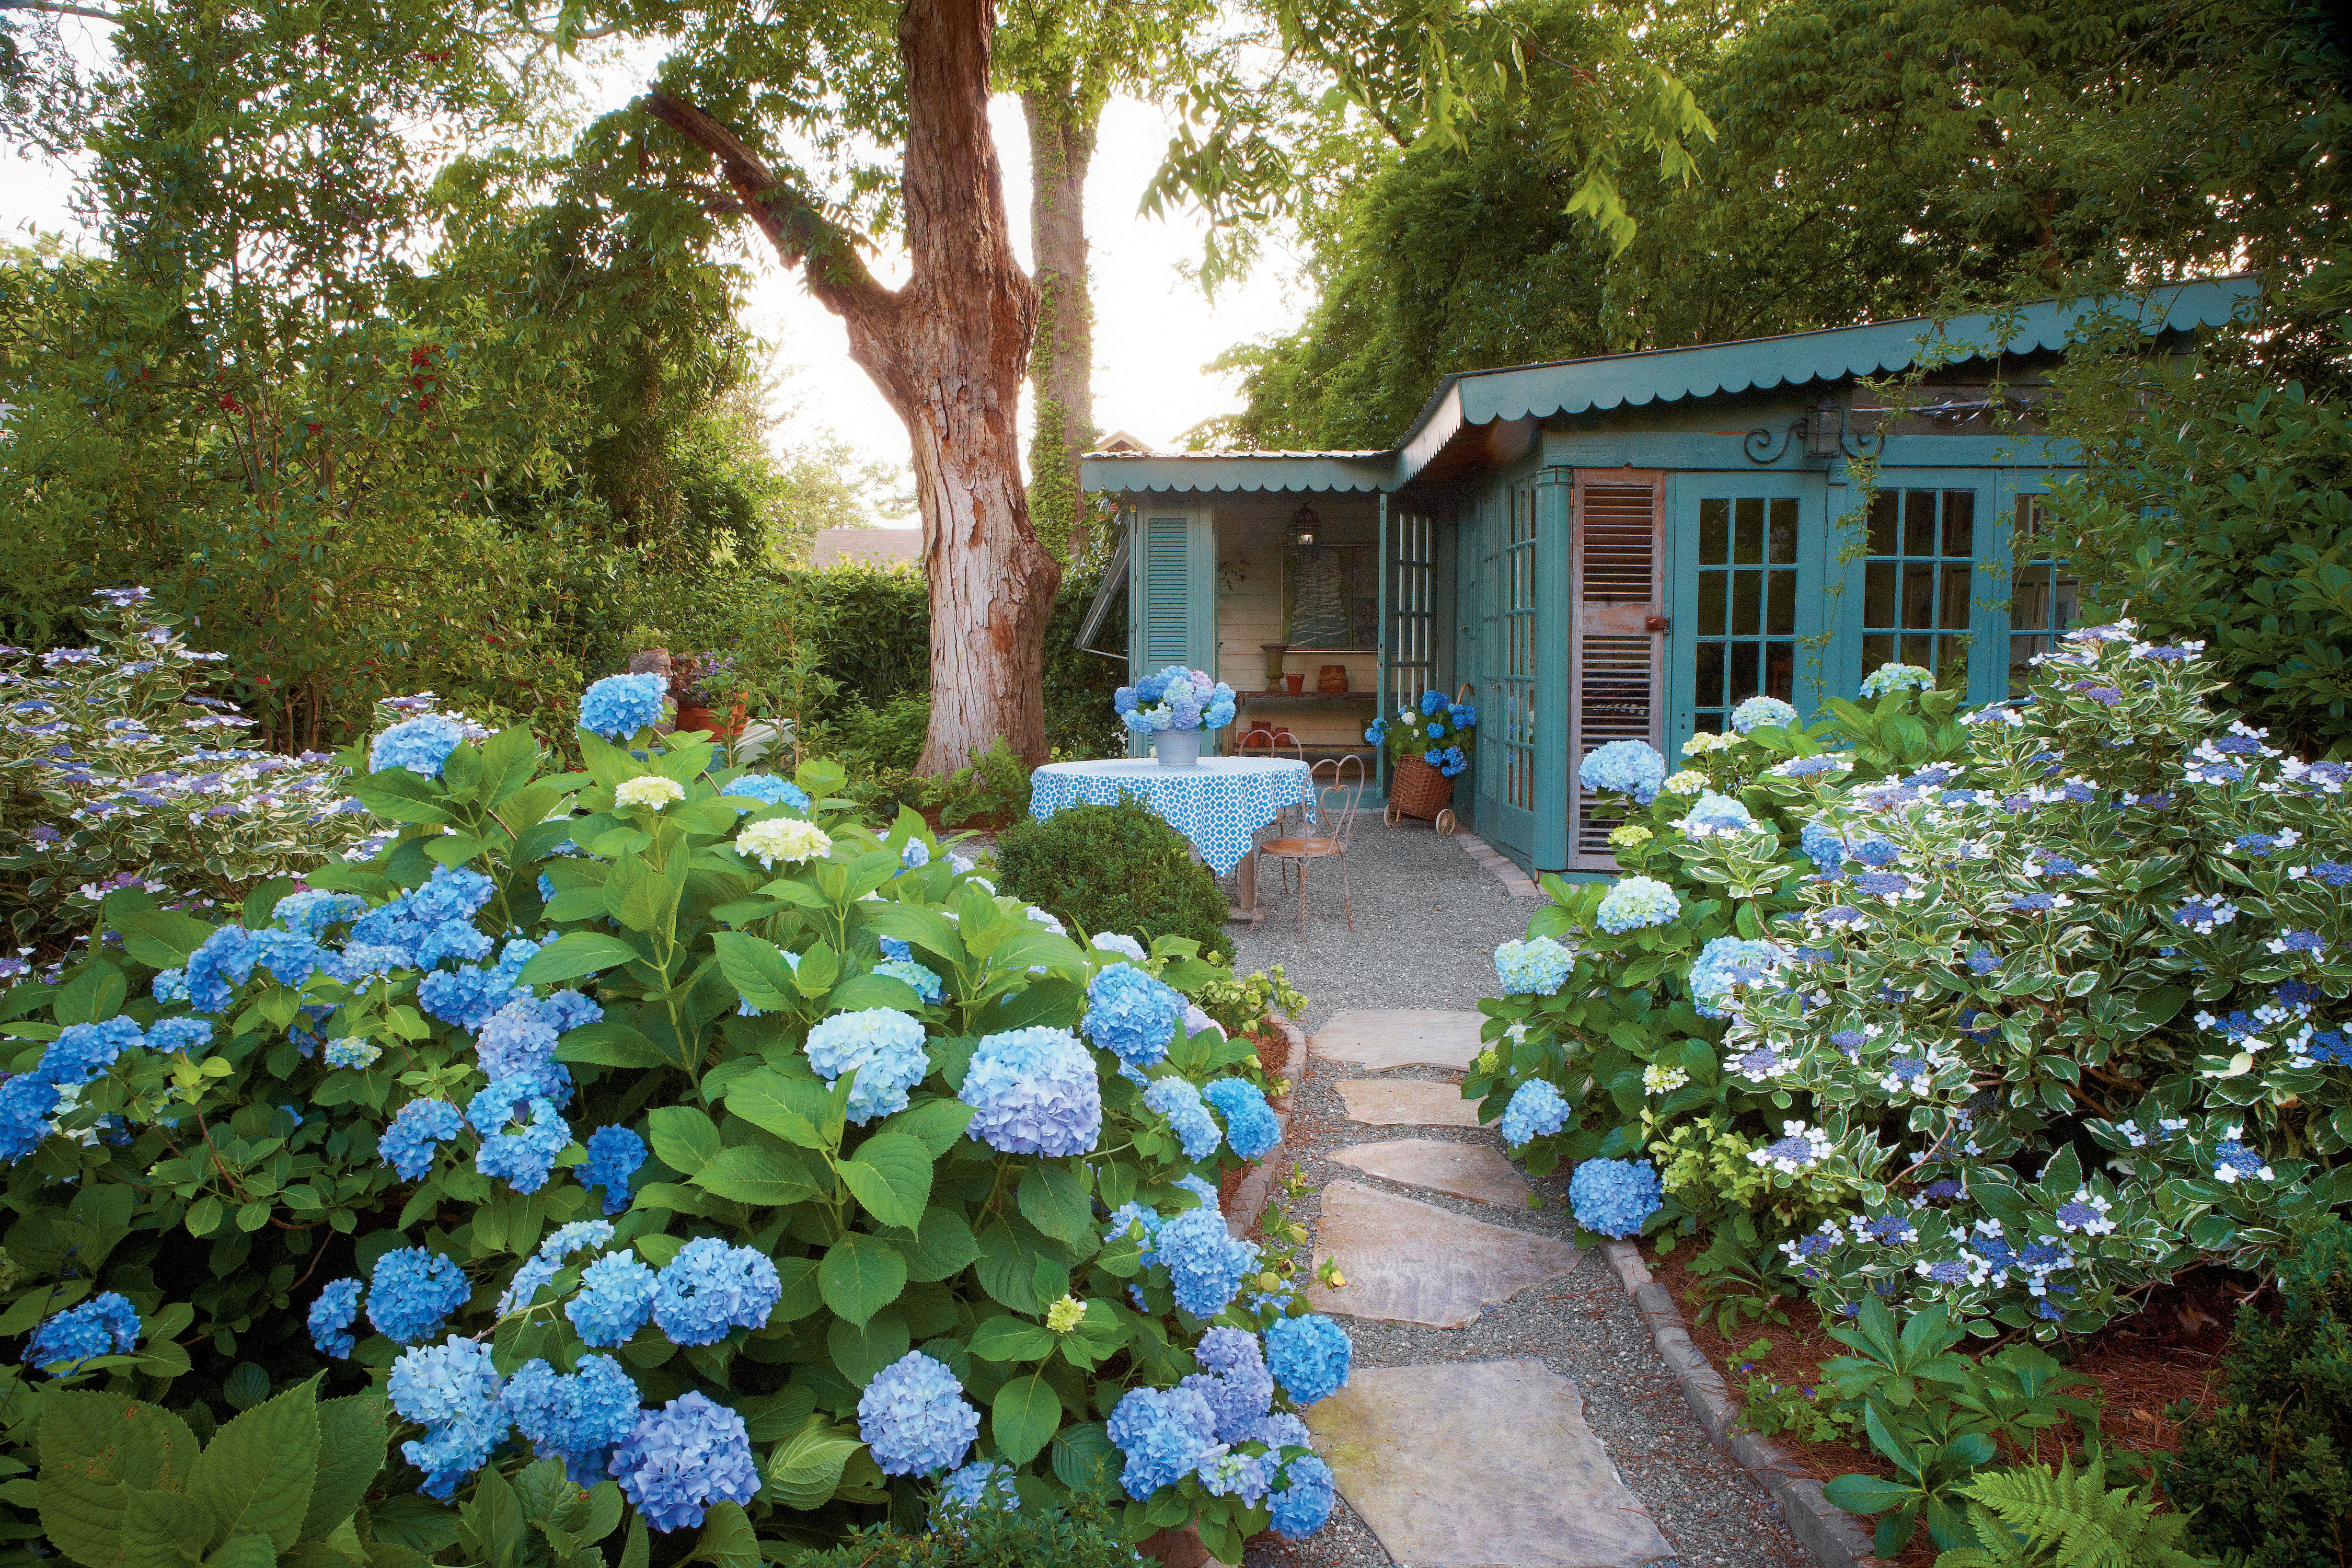 The Complete Guide to French Hydrangeas